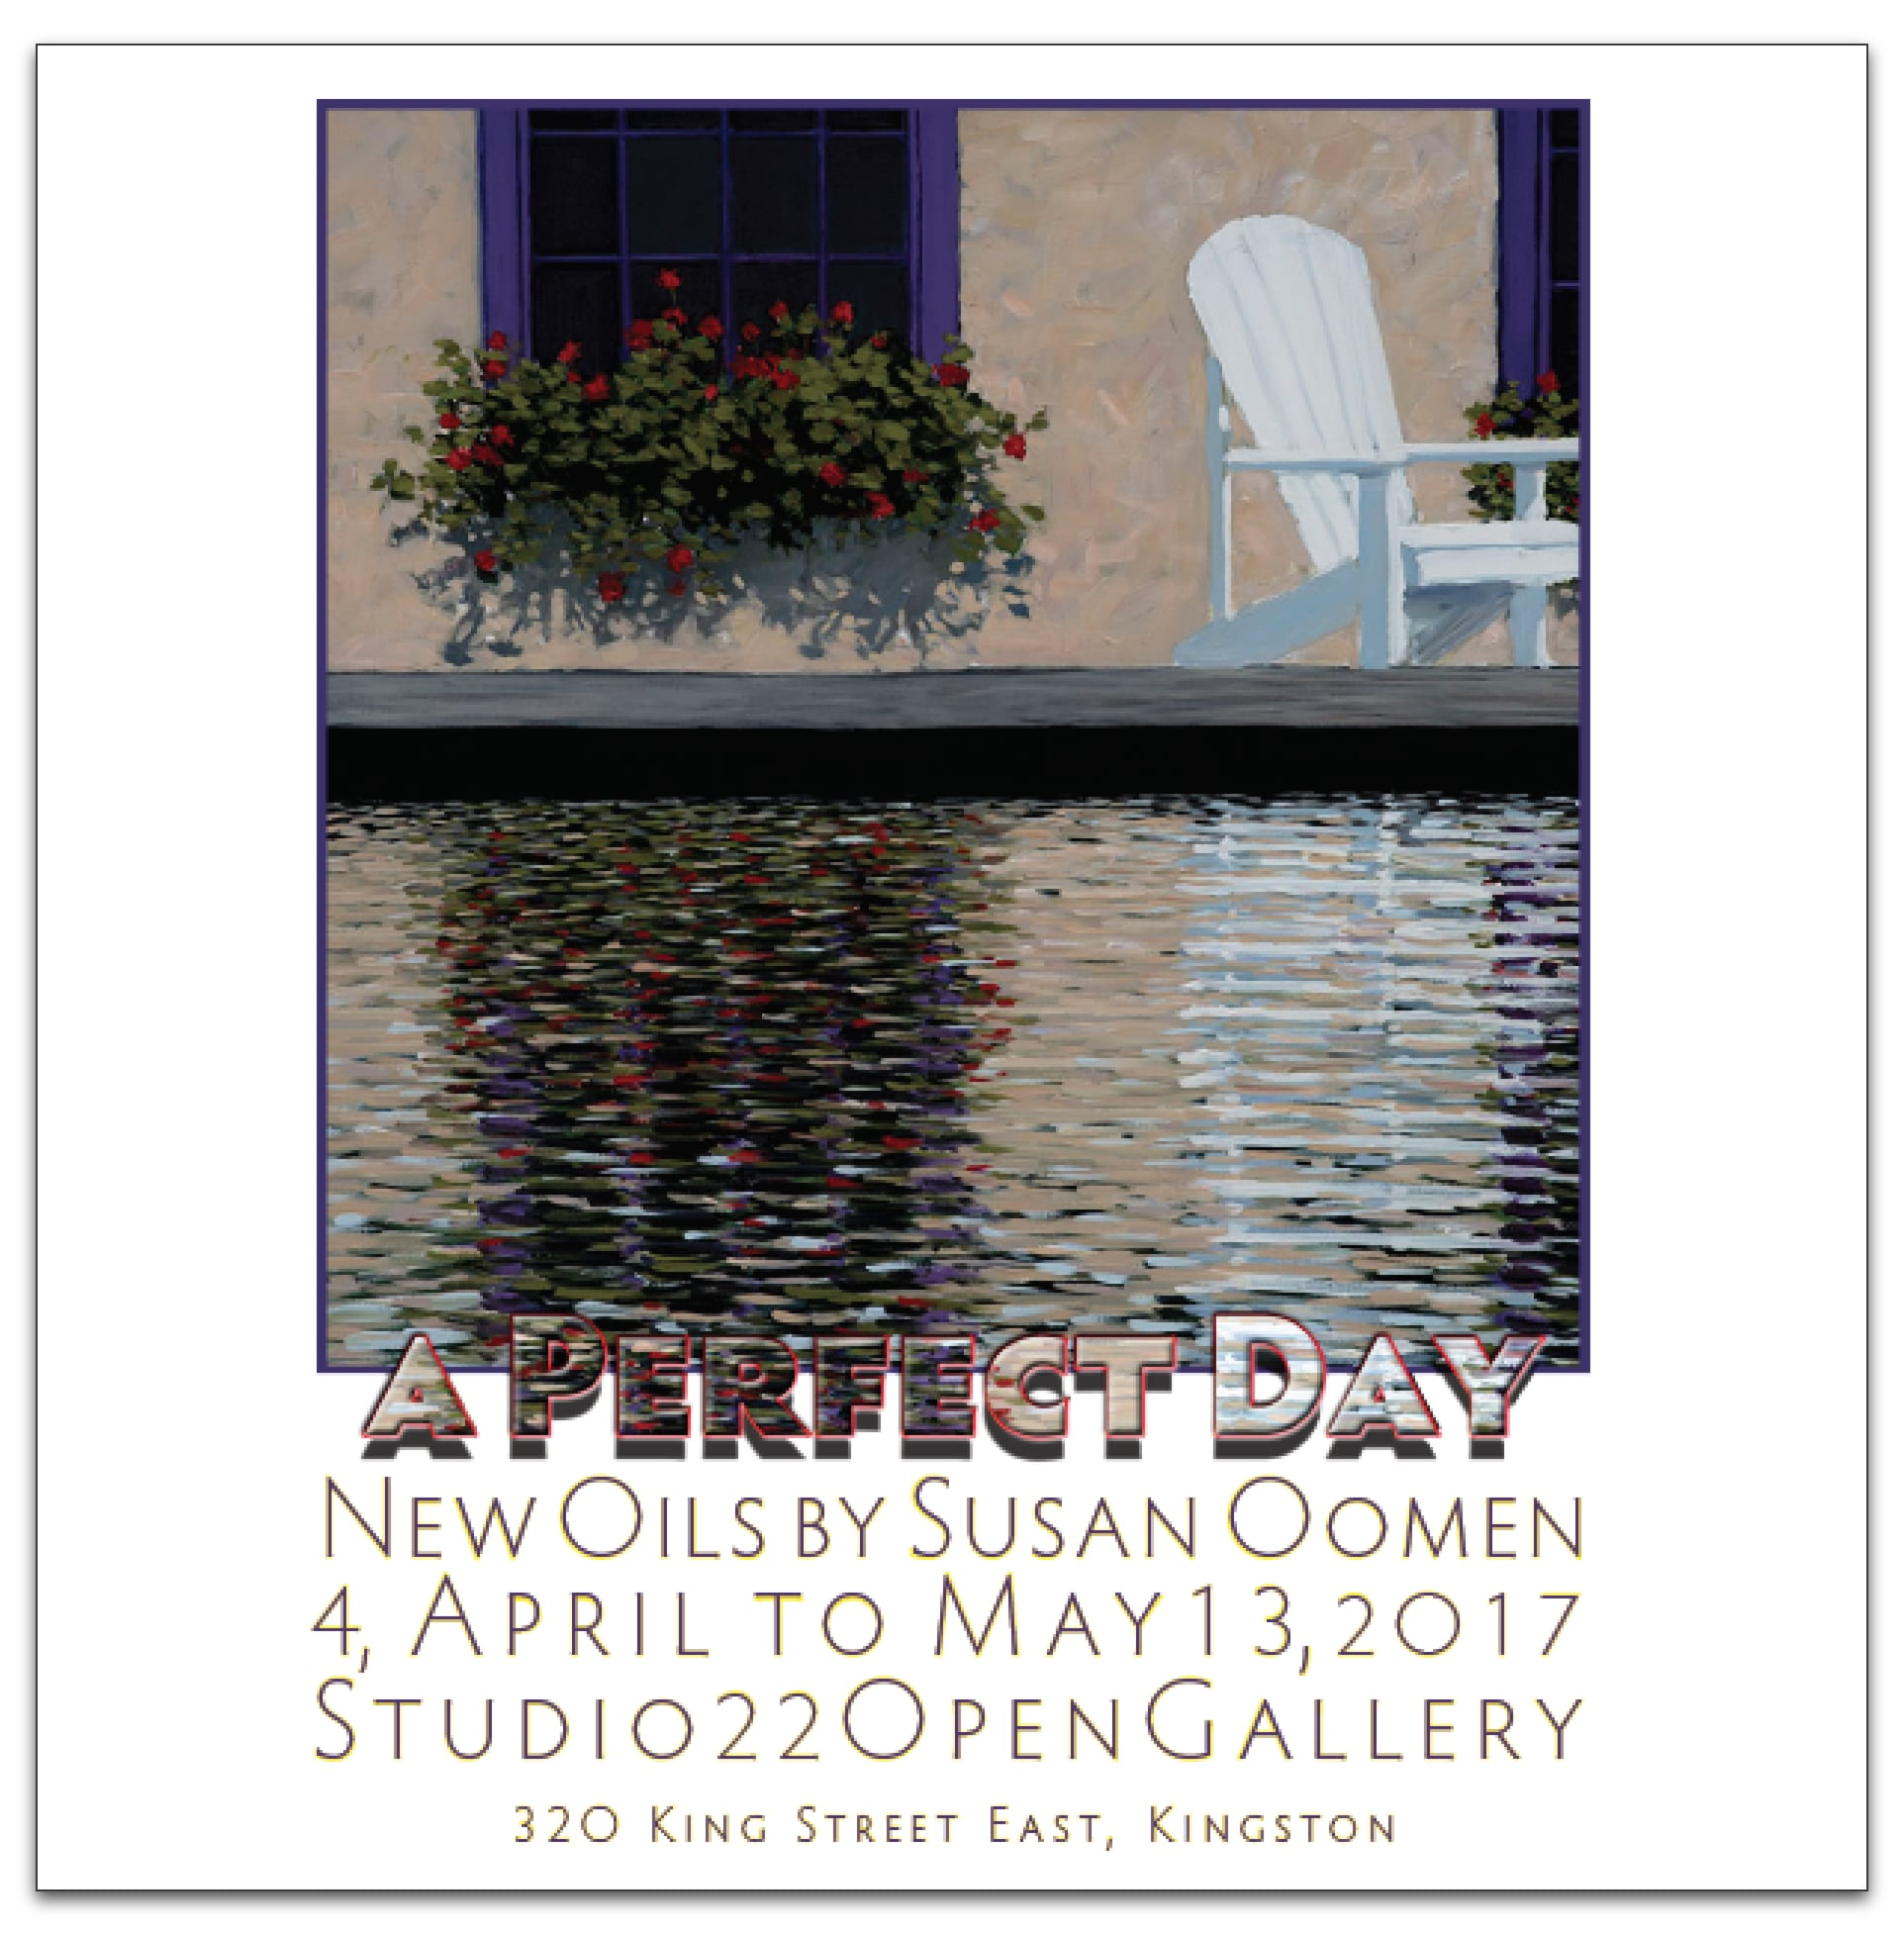 A Perfect Day – New Oils by Susan Ooman